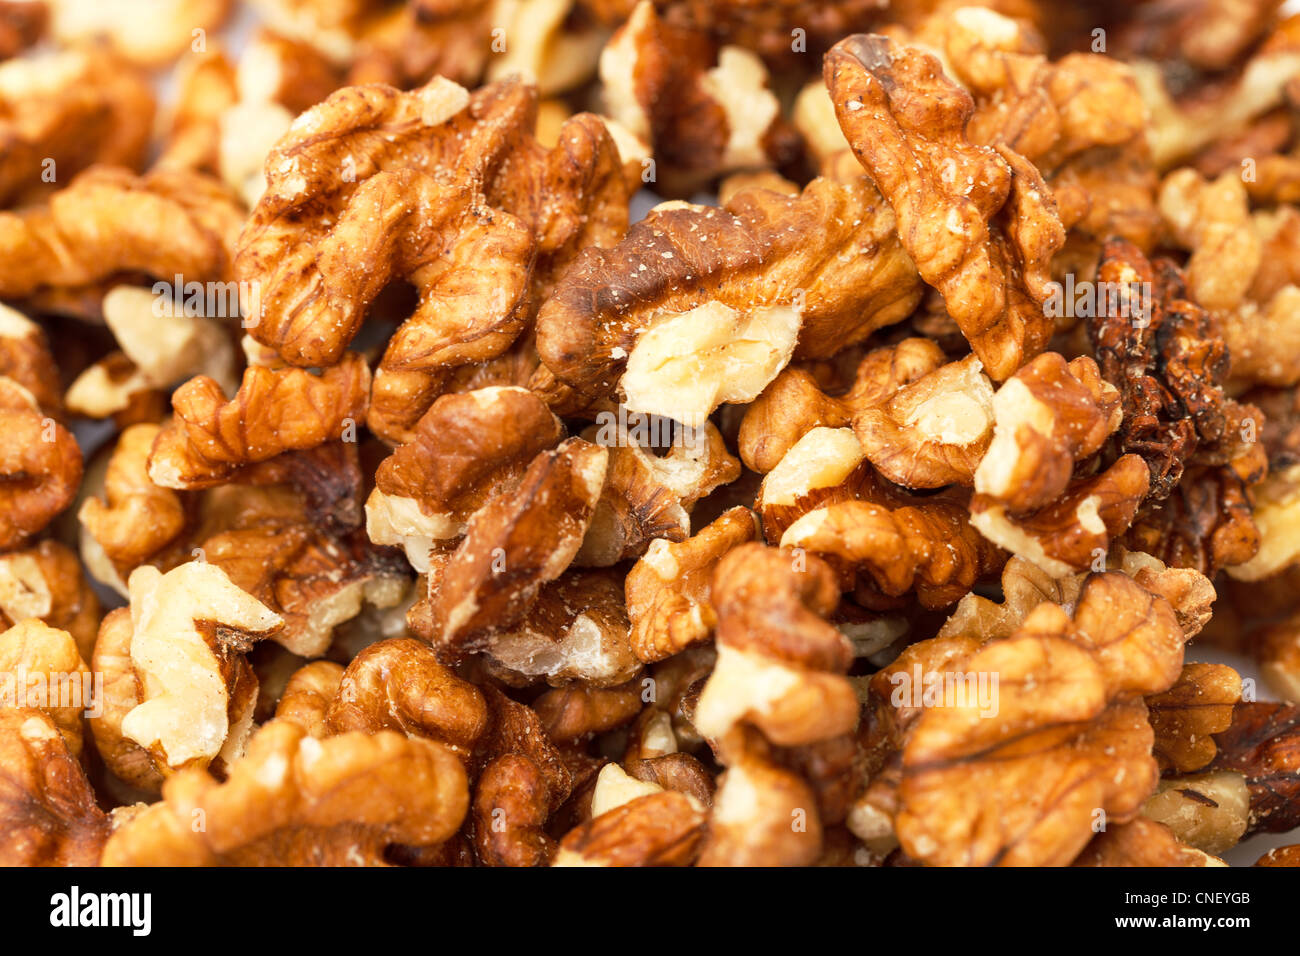 Heap Purified Walnuts closeup - Stock Image